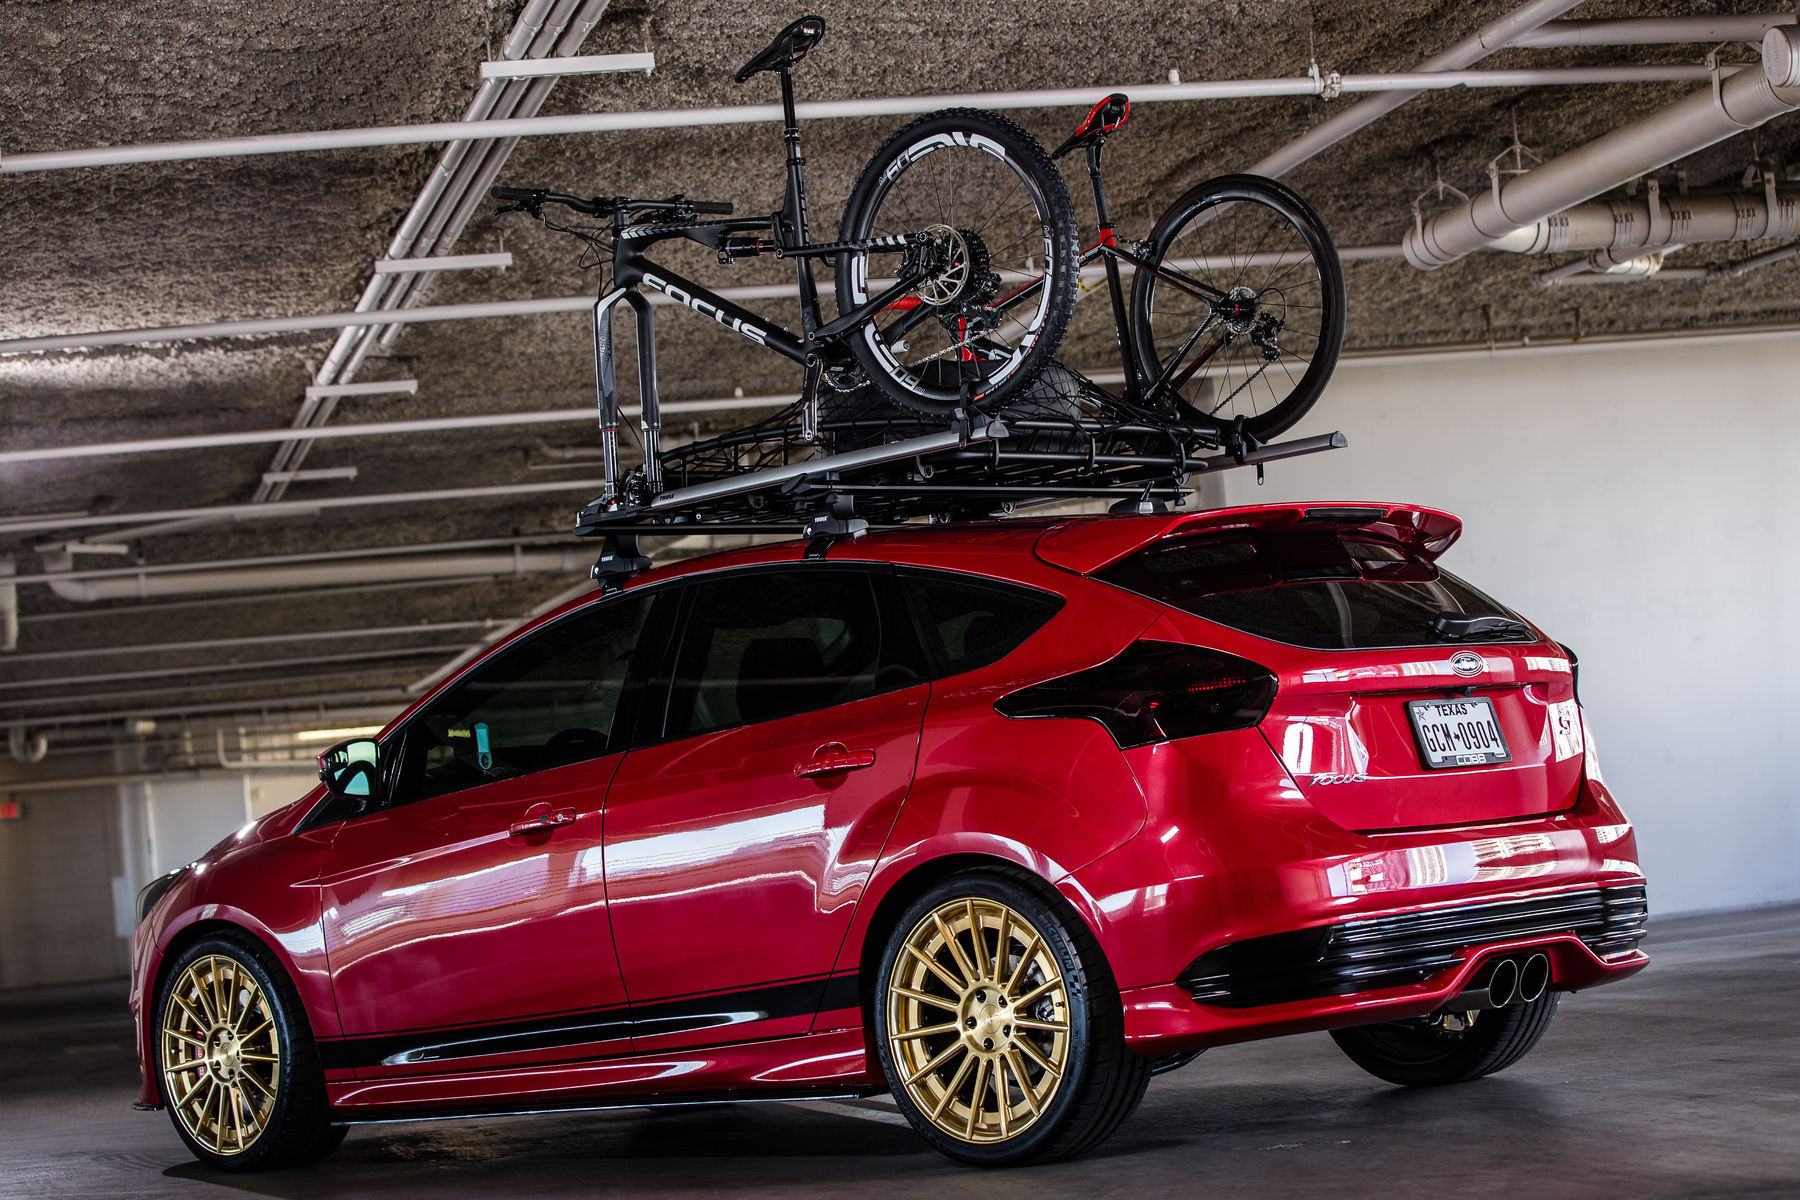 2015 Ford Focus ST | 2015 COBB Tuning Ford Focus ST - Bikes Loaded Up